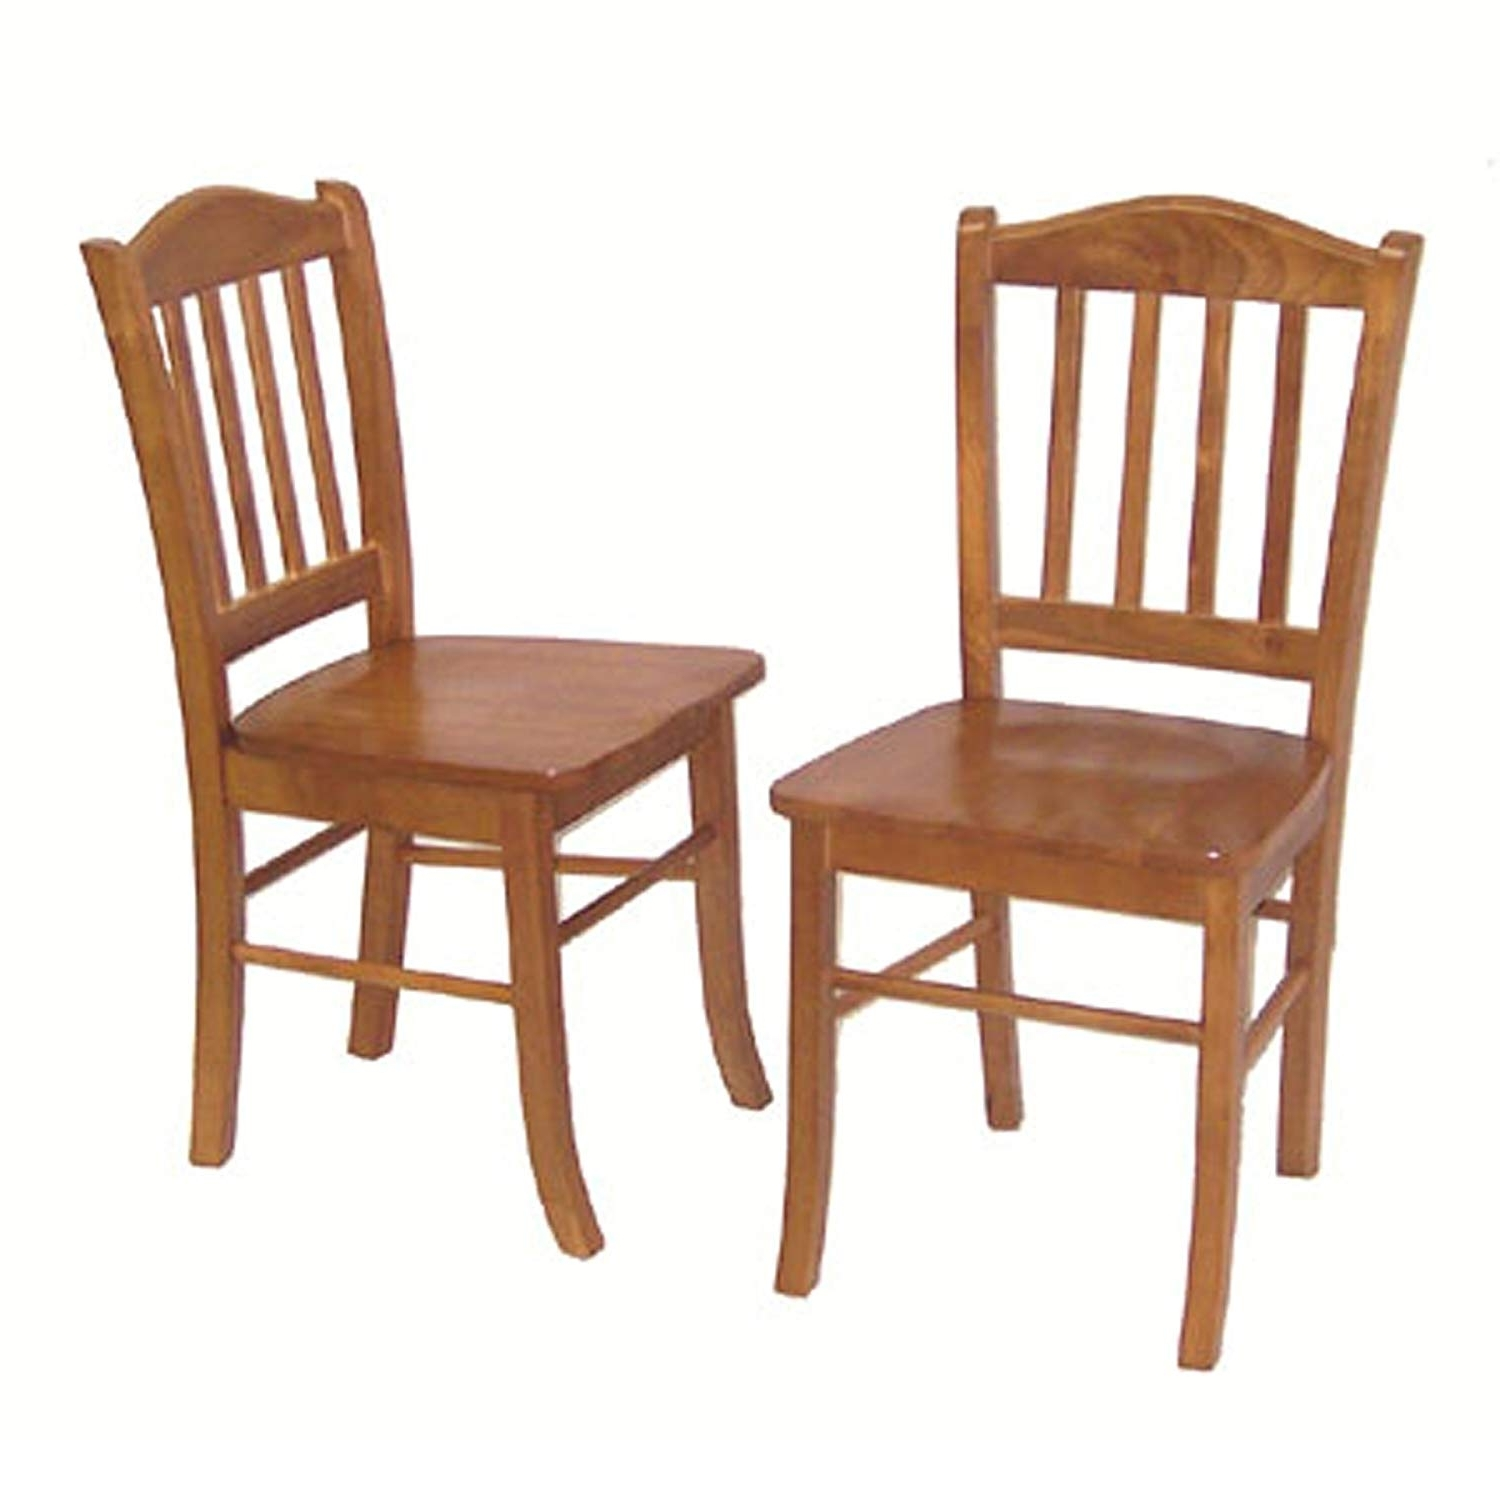 2018 Oak Dining Chairs Within Amazon: Boraam 30136 Shaker Chair, Oak, Set Of 2: Kitchen & Dining (View 6 of 25)